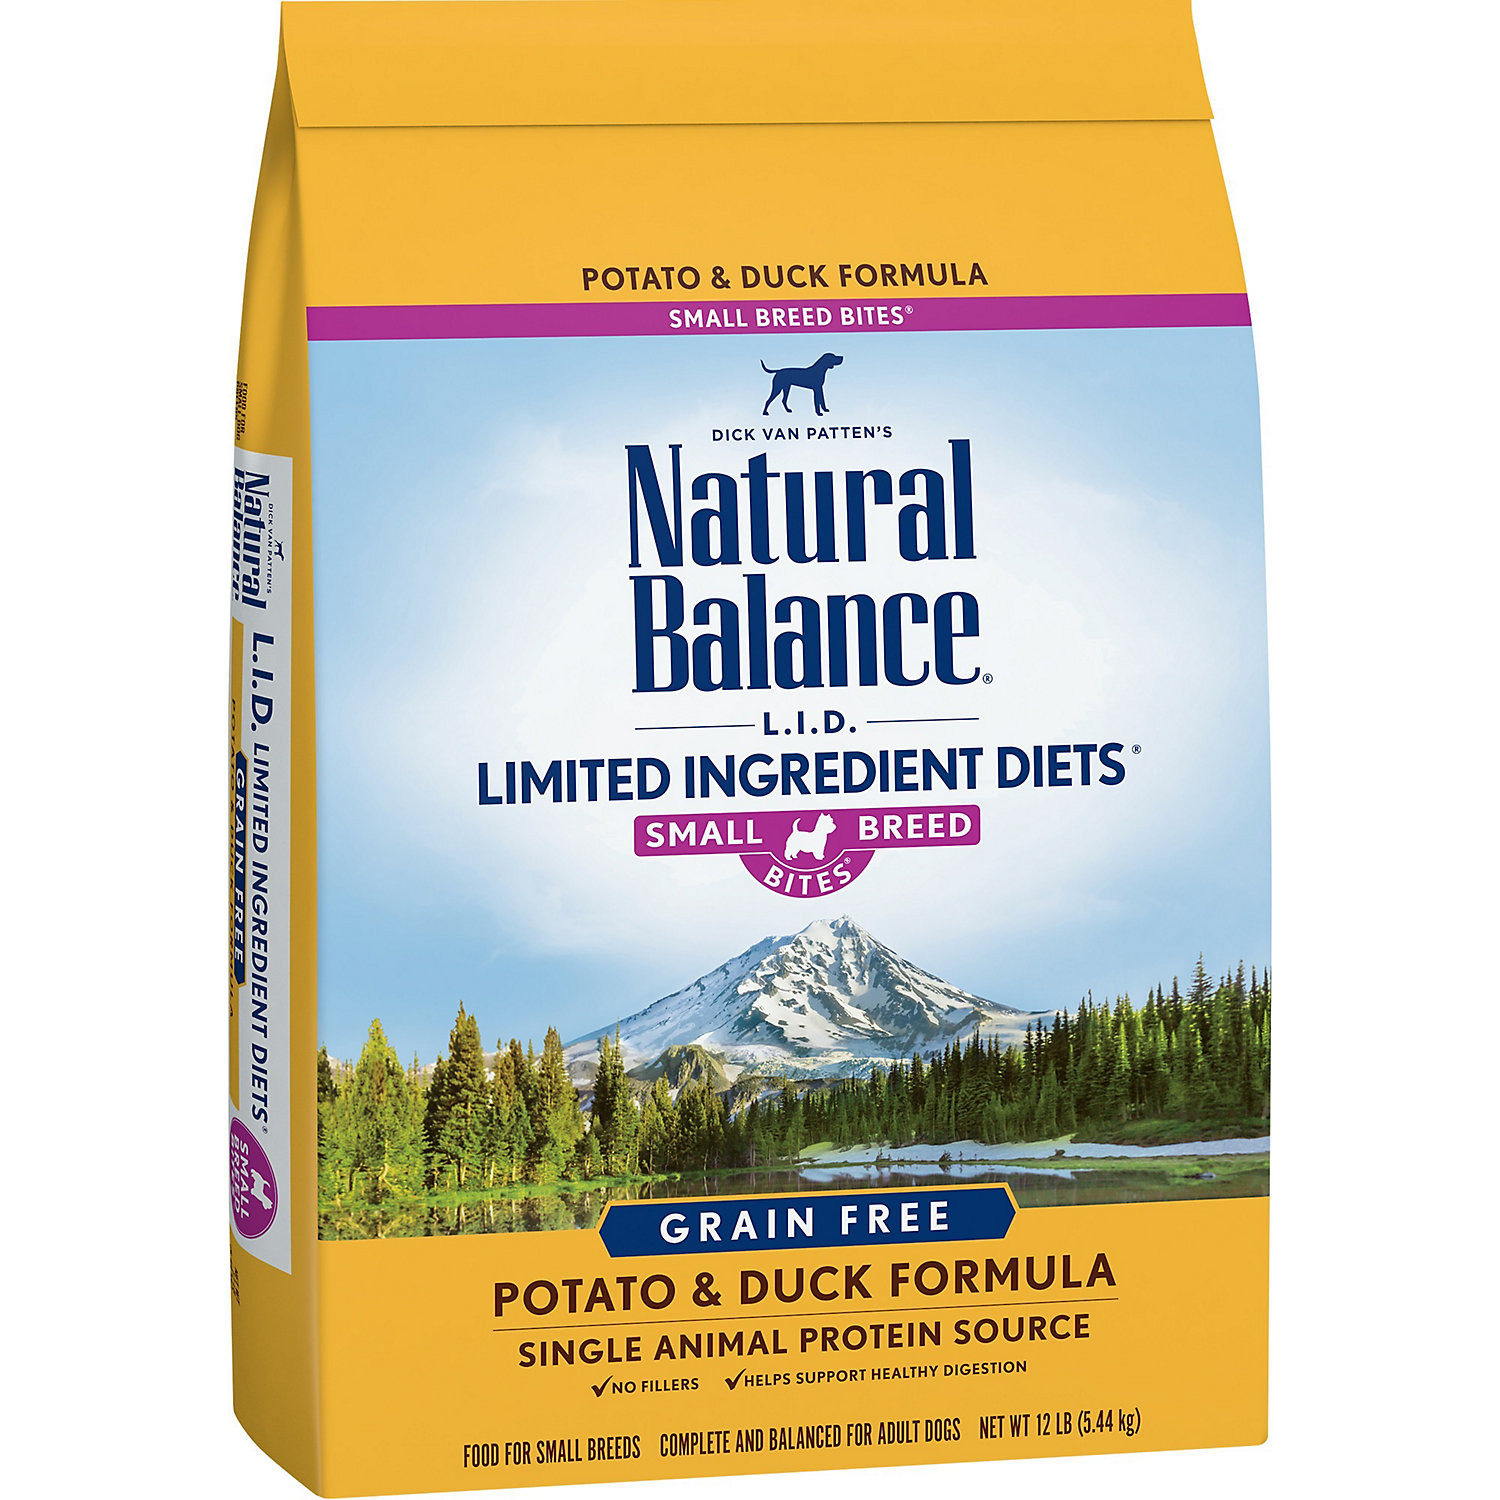 Natural Balance Small Breed Bites L.I.D. Limited Ingredient Diets Grain-Free Potato & Duck Formula Dry Dog Food